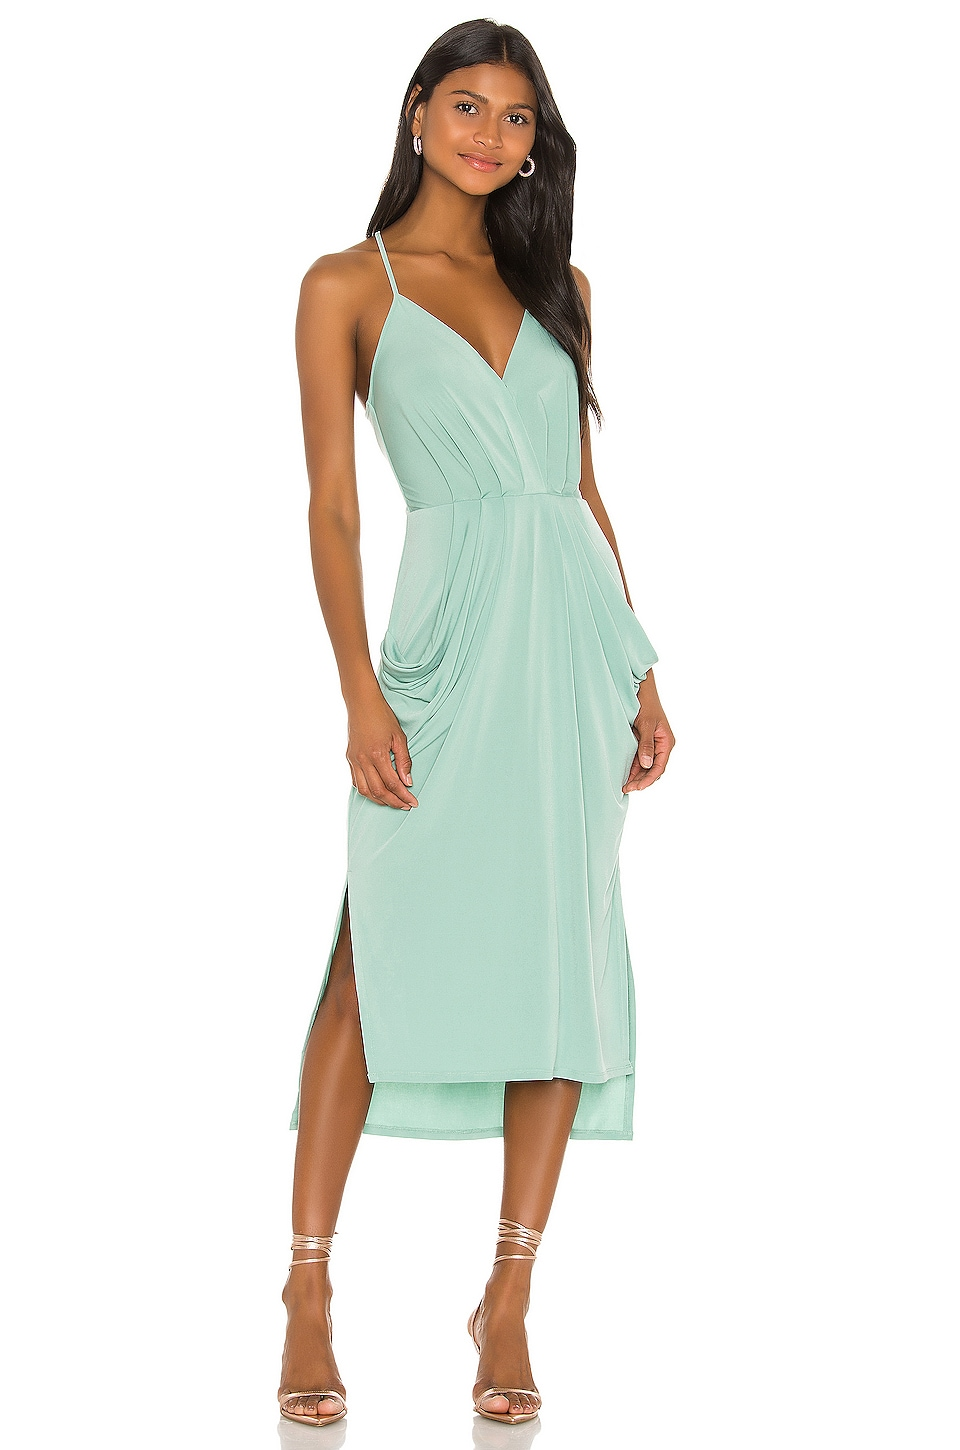 Faux Wrap Midi Dress             BCBGeneration                                                                                                                                         Sale price:                                                                       CA$ 51.34                                                                  Previous price:                                                                       CA$ 105.38 15